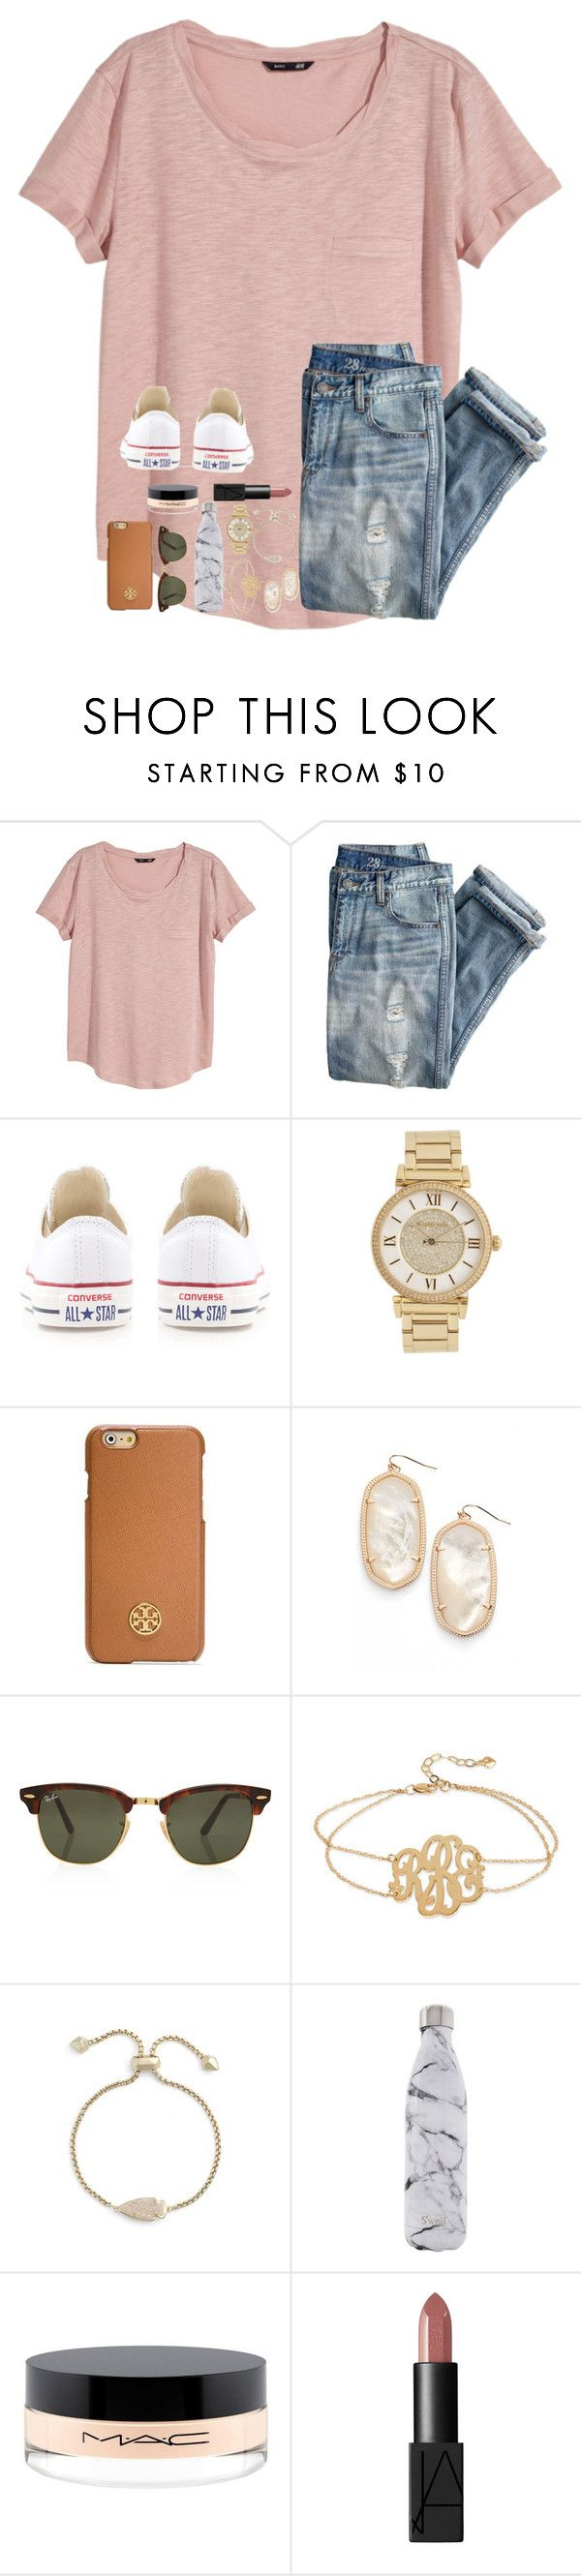 """Untitled #104"" by tortor7 ❤ liked on Polyvore featuring H&M, J.Crew, Converse, Michael Kors, Tory Burch, Kendra Scott, Rayban, Kate Spade, S'well and MAC Cosmetics"